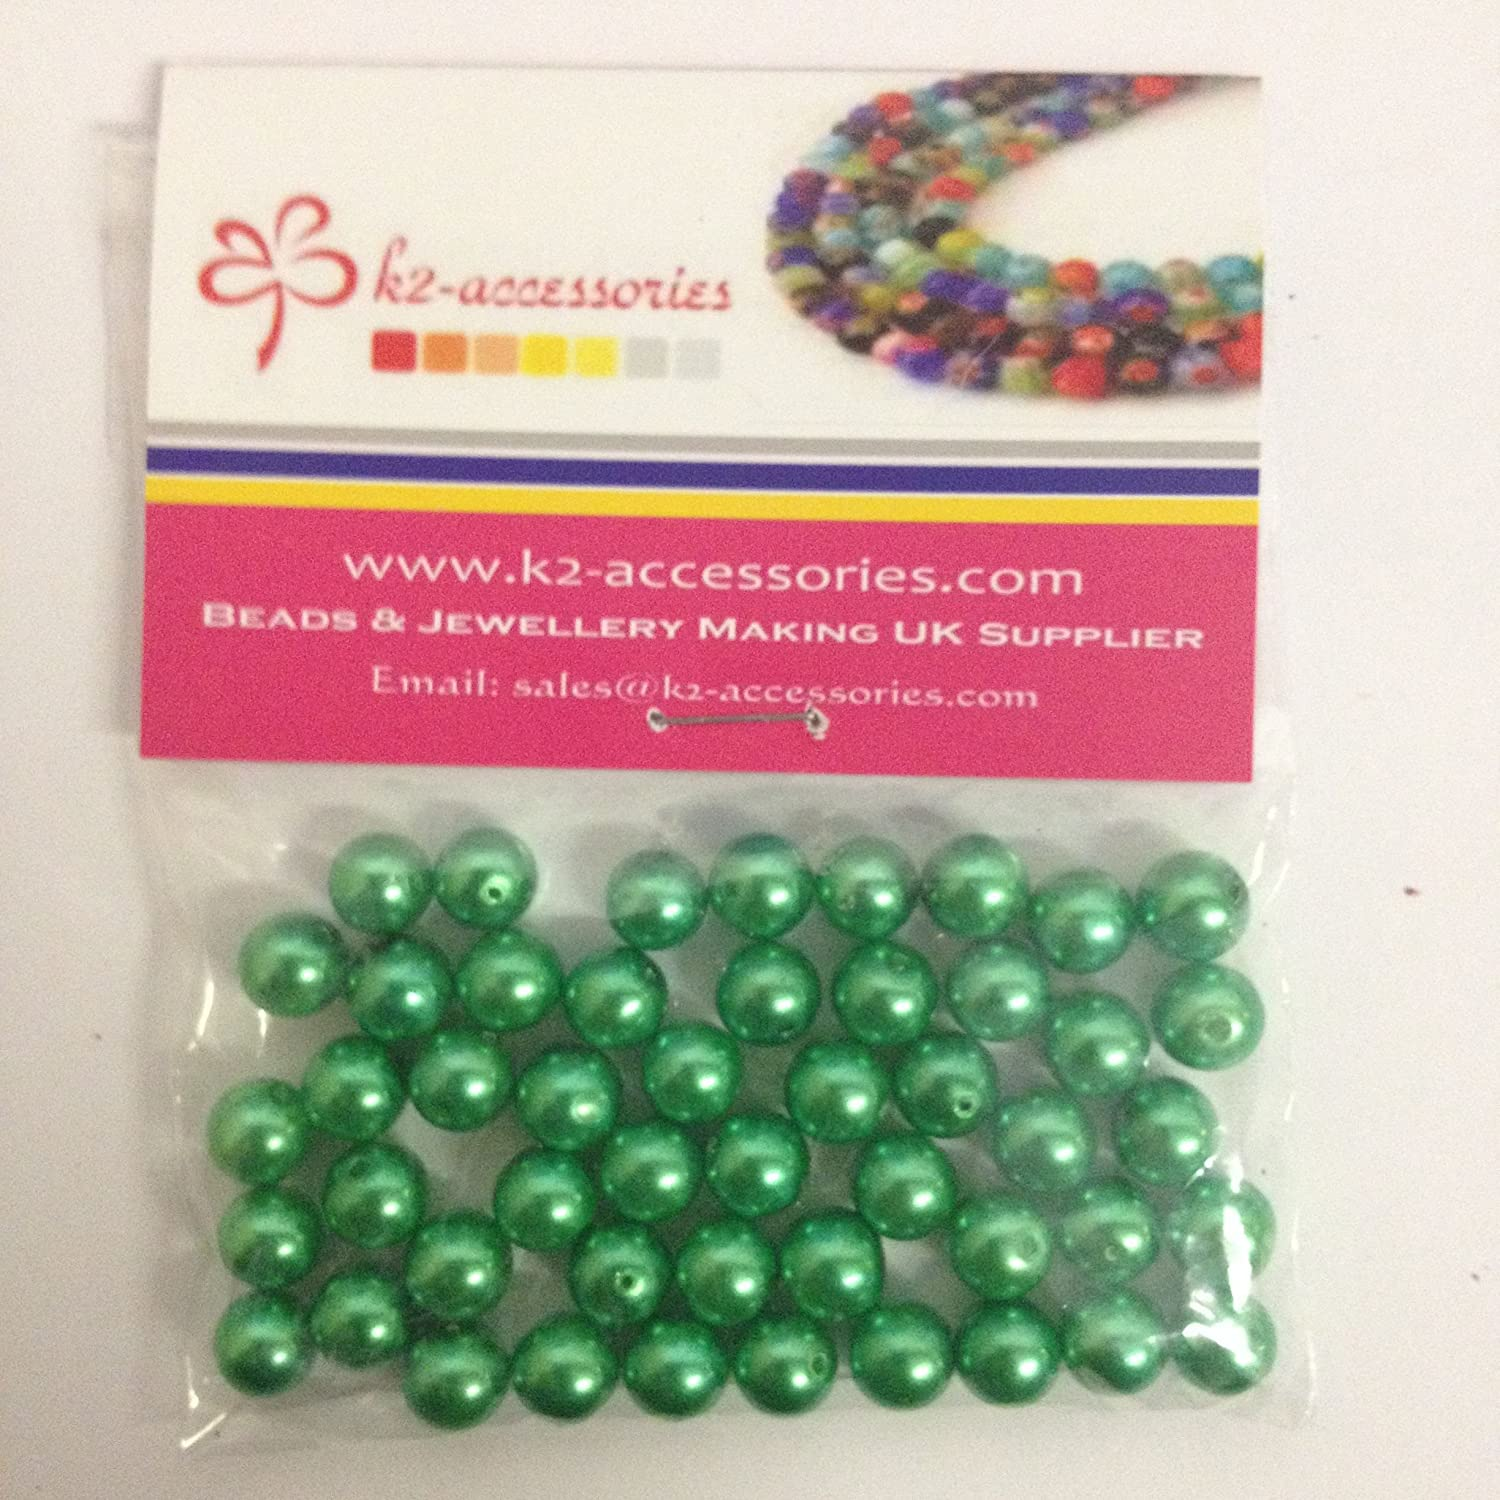 100 pieces 8mm Glass Pearl Beads - Spring Green - A1037 k2-accessories